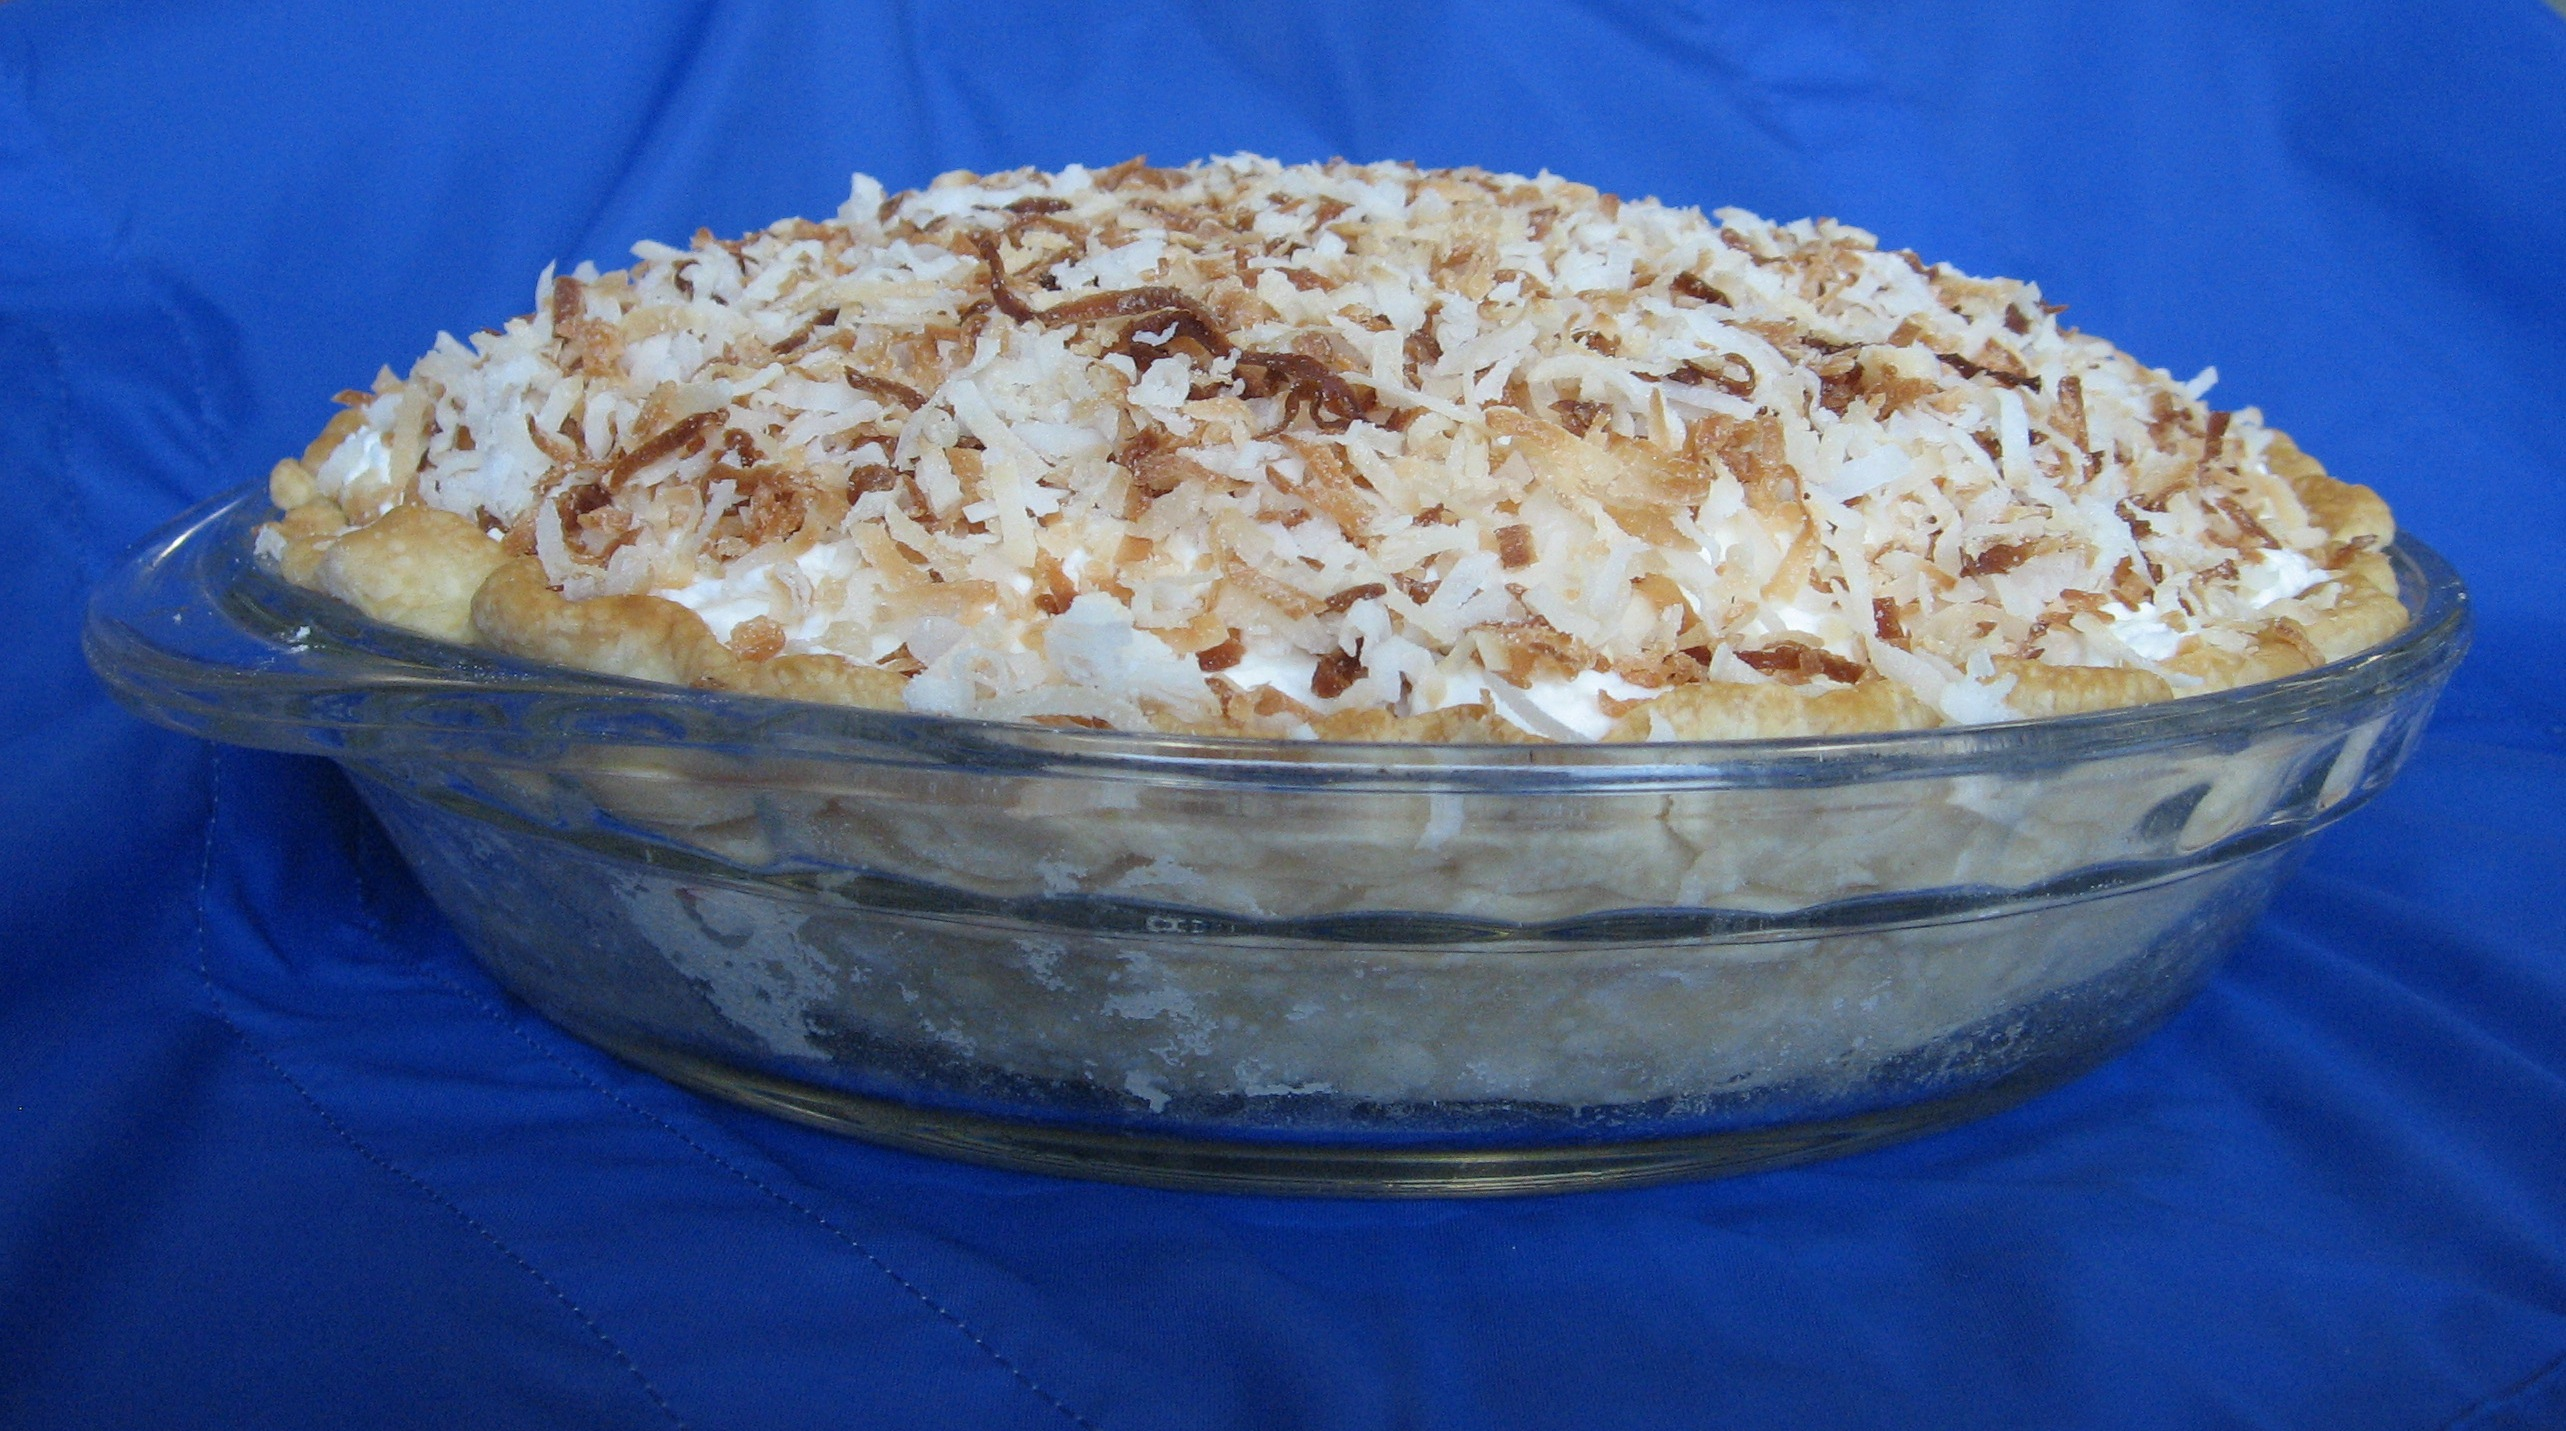 Banana & Coconut Cream Pie | Tasty Kitchen: A Happy Recipe Community!